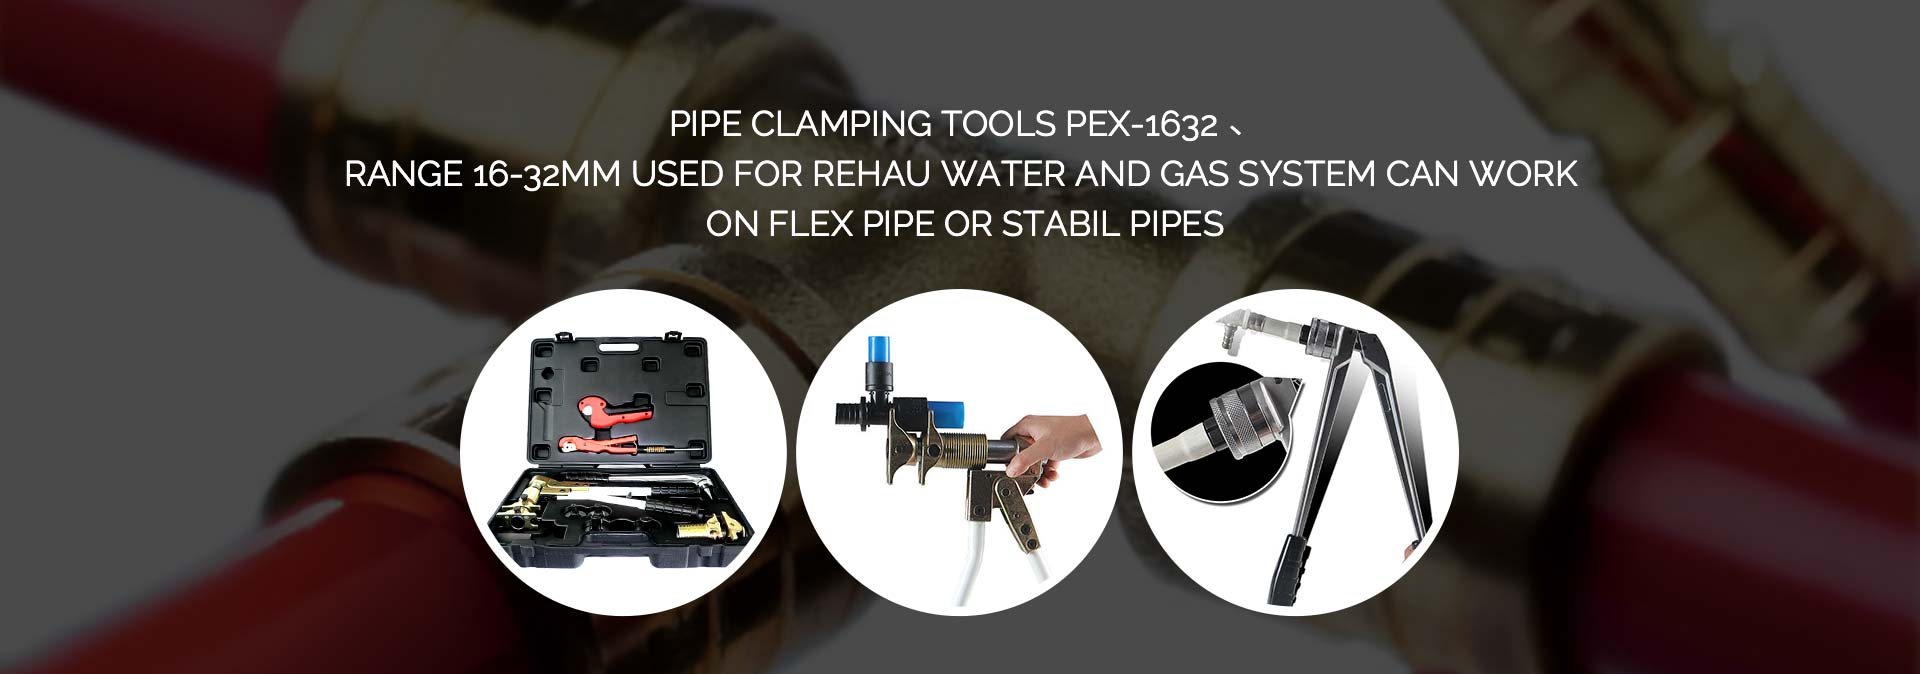 Pipe Clamping Tools PEX-1632 Range 16-32mm Used for Rehau Water and Gas System can work on Flex pipe or Stabil pipes